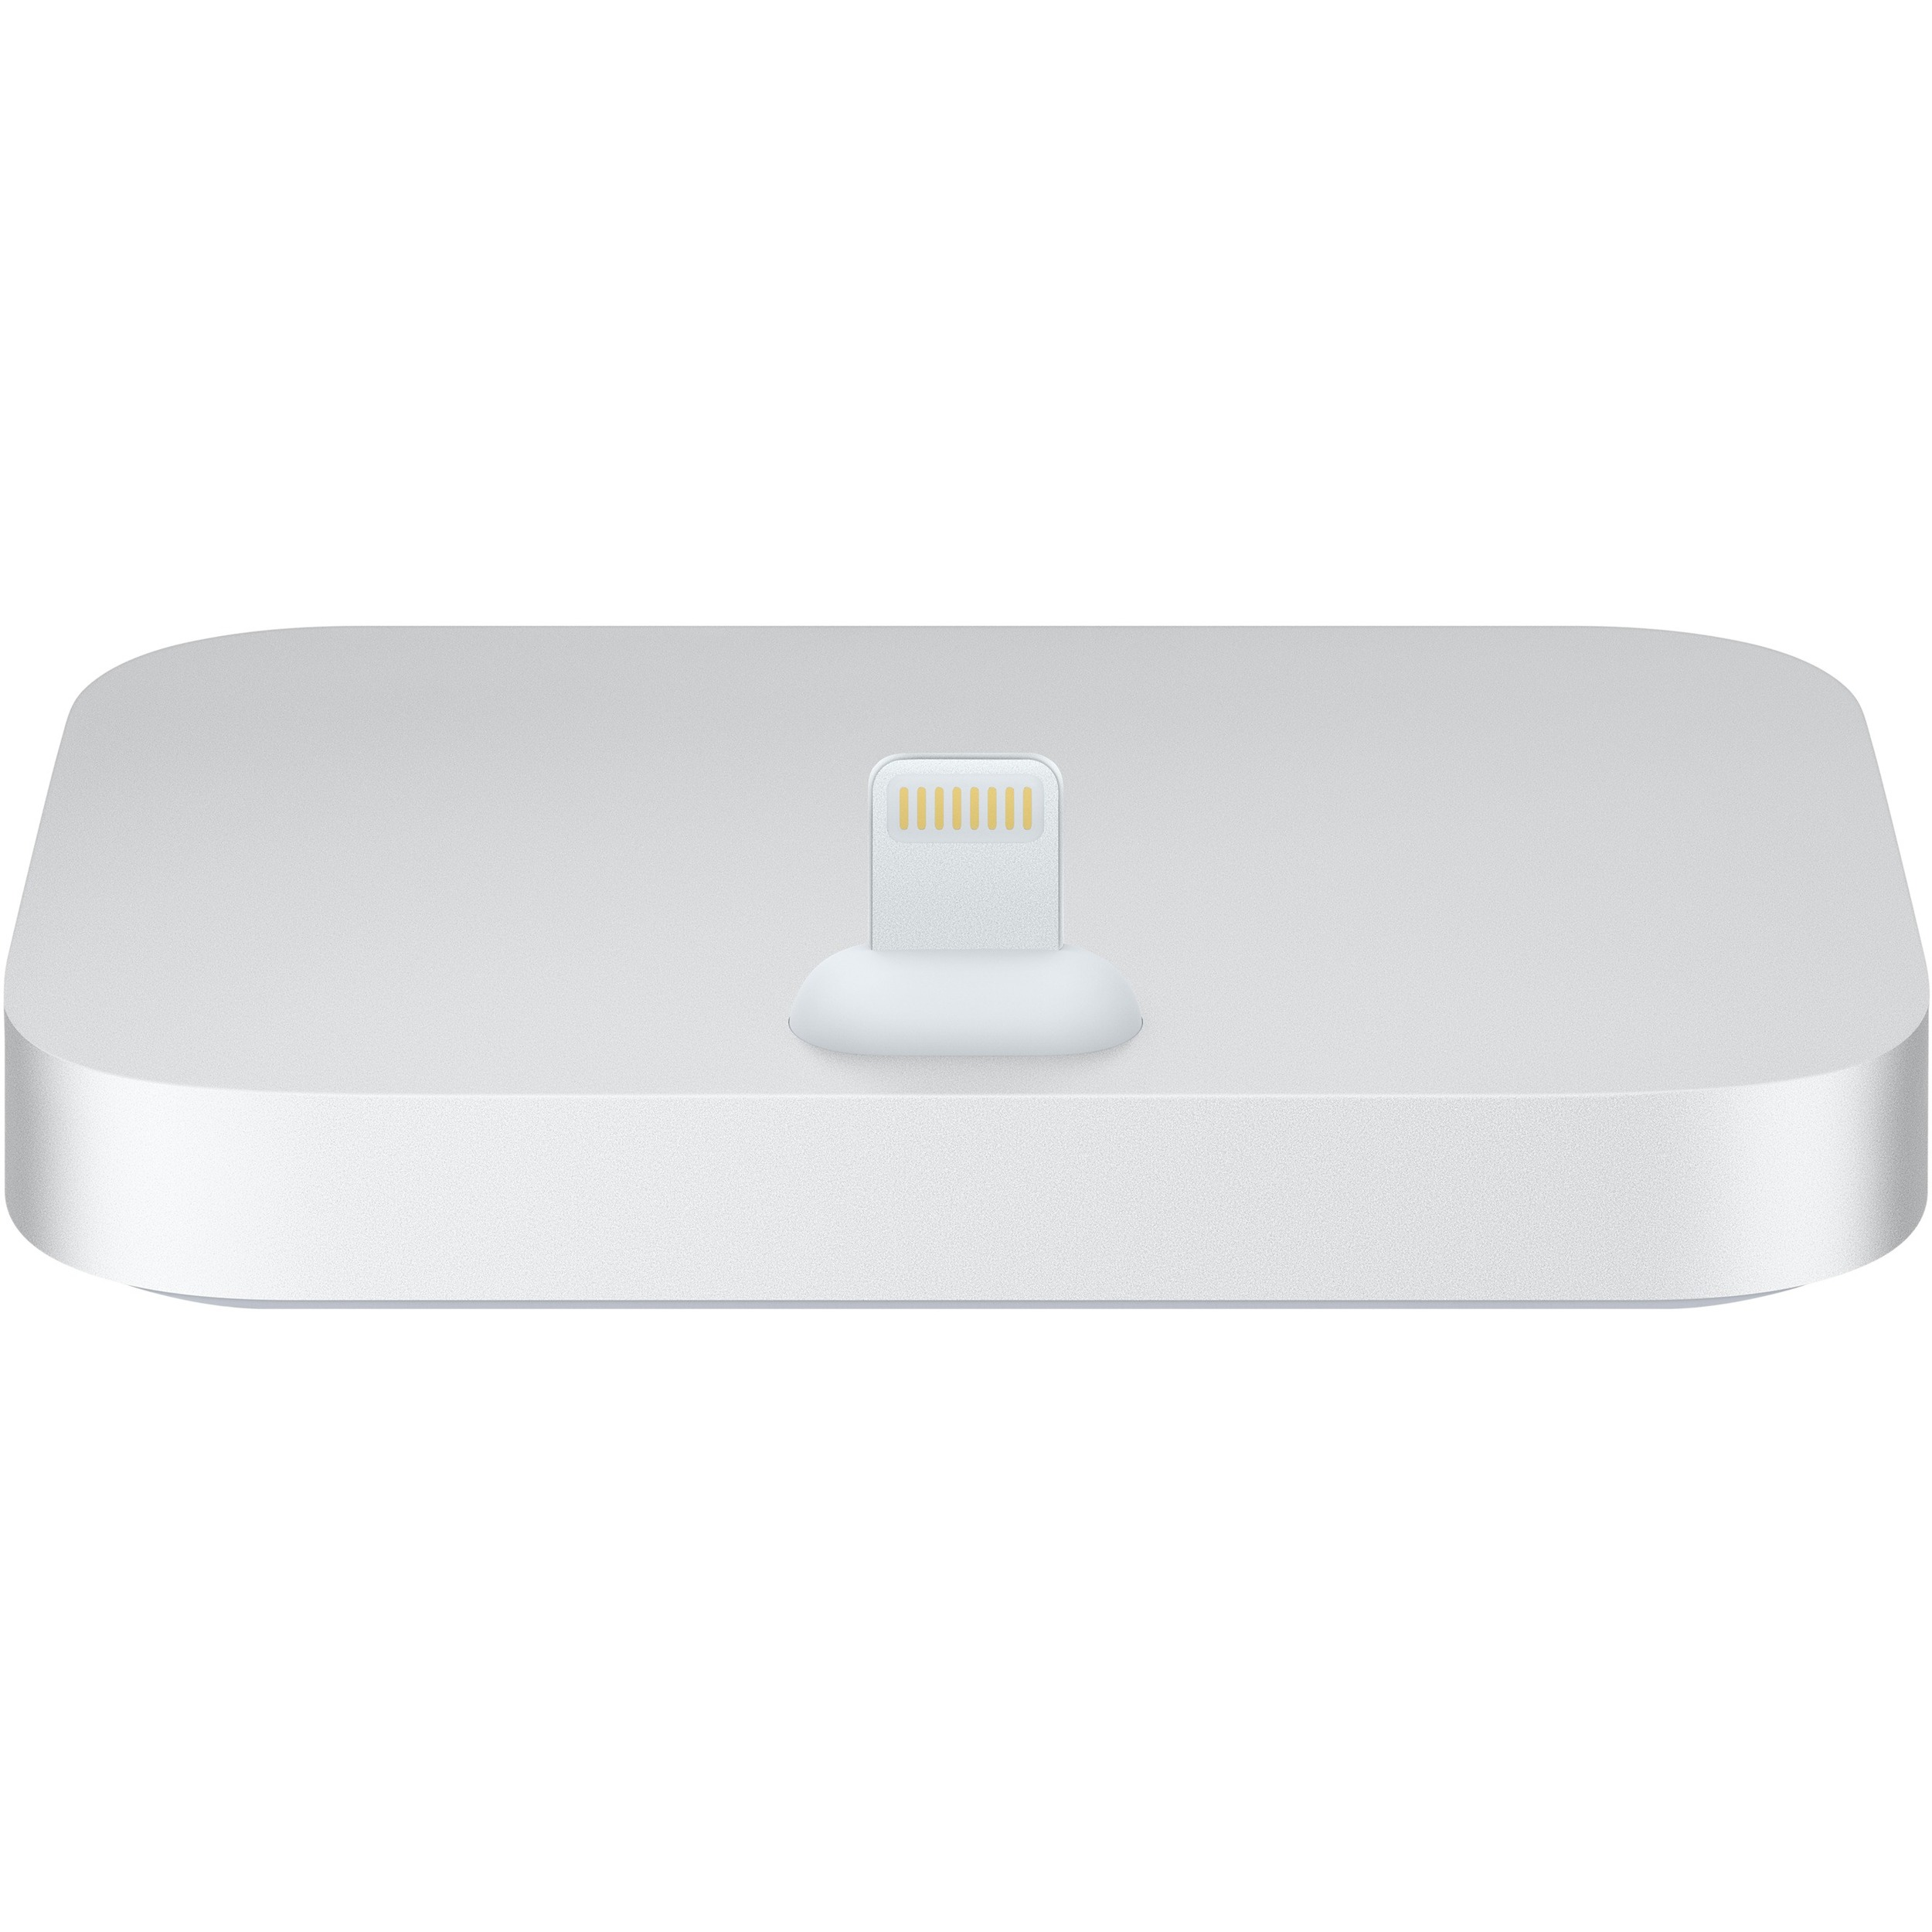 Apple Docking Cradle for iPhone, iPod